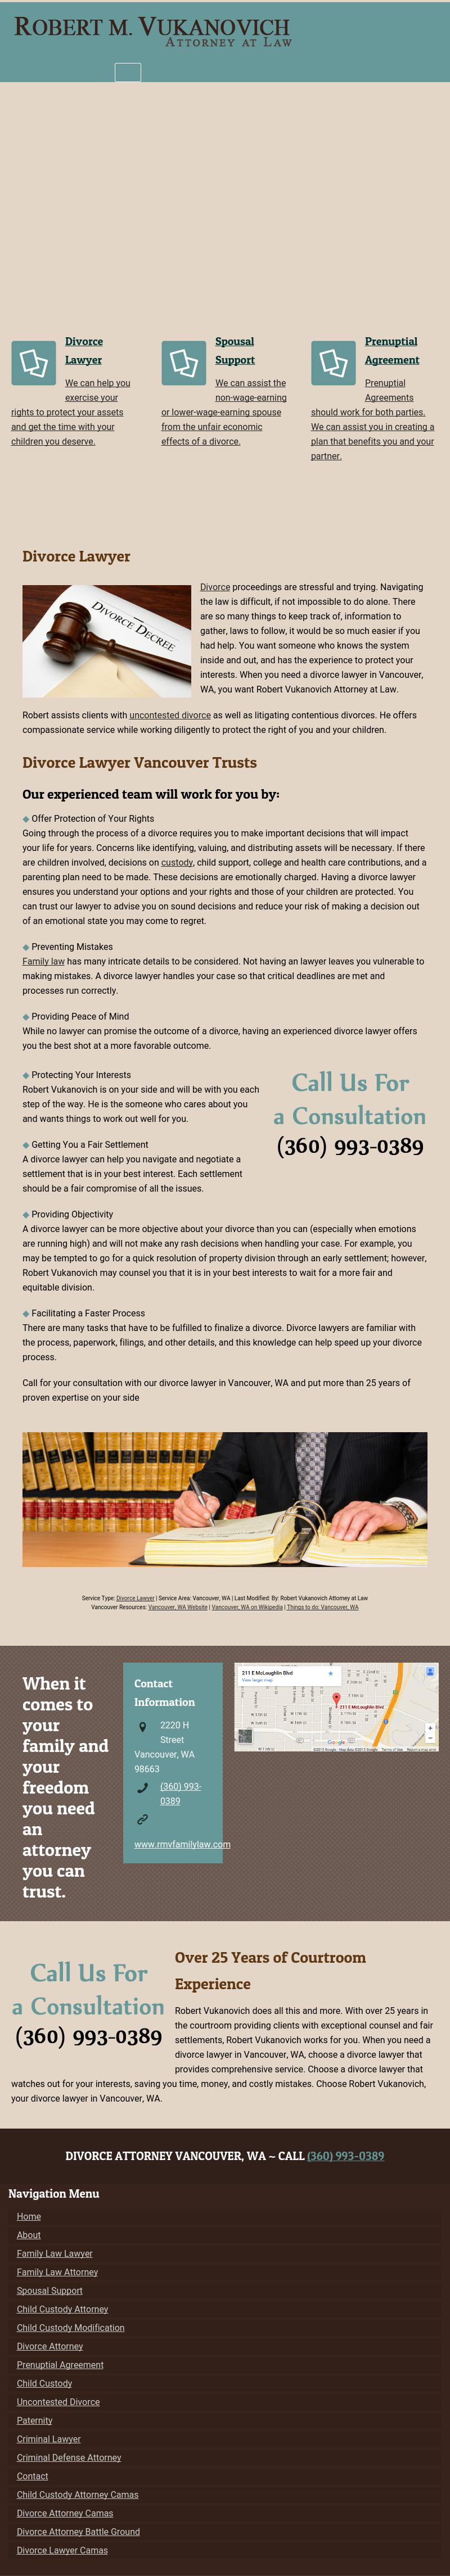 Robert Vukanovich Attorney at Law - Vancouver WA Lawyers